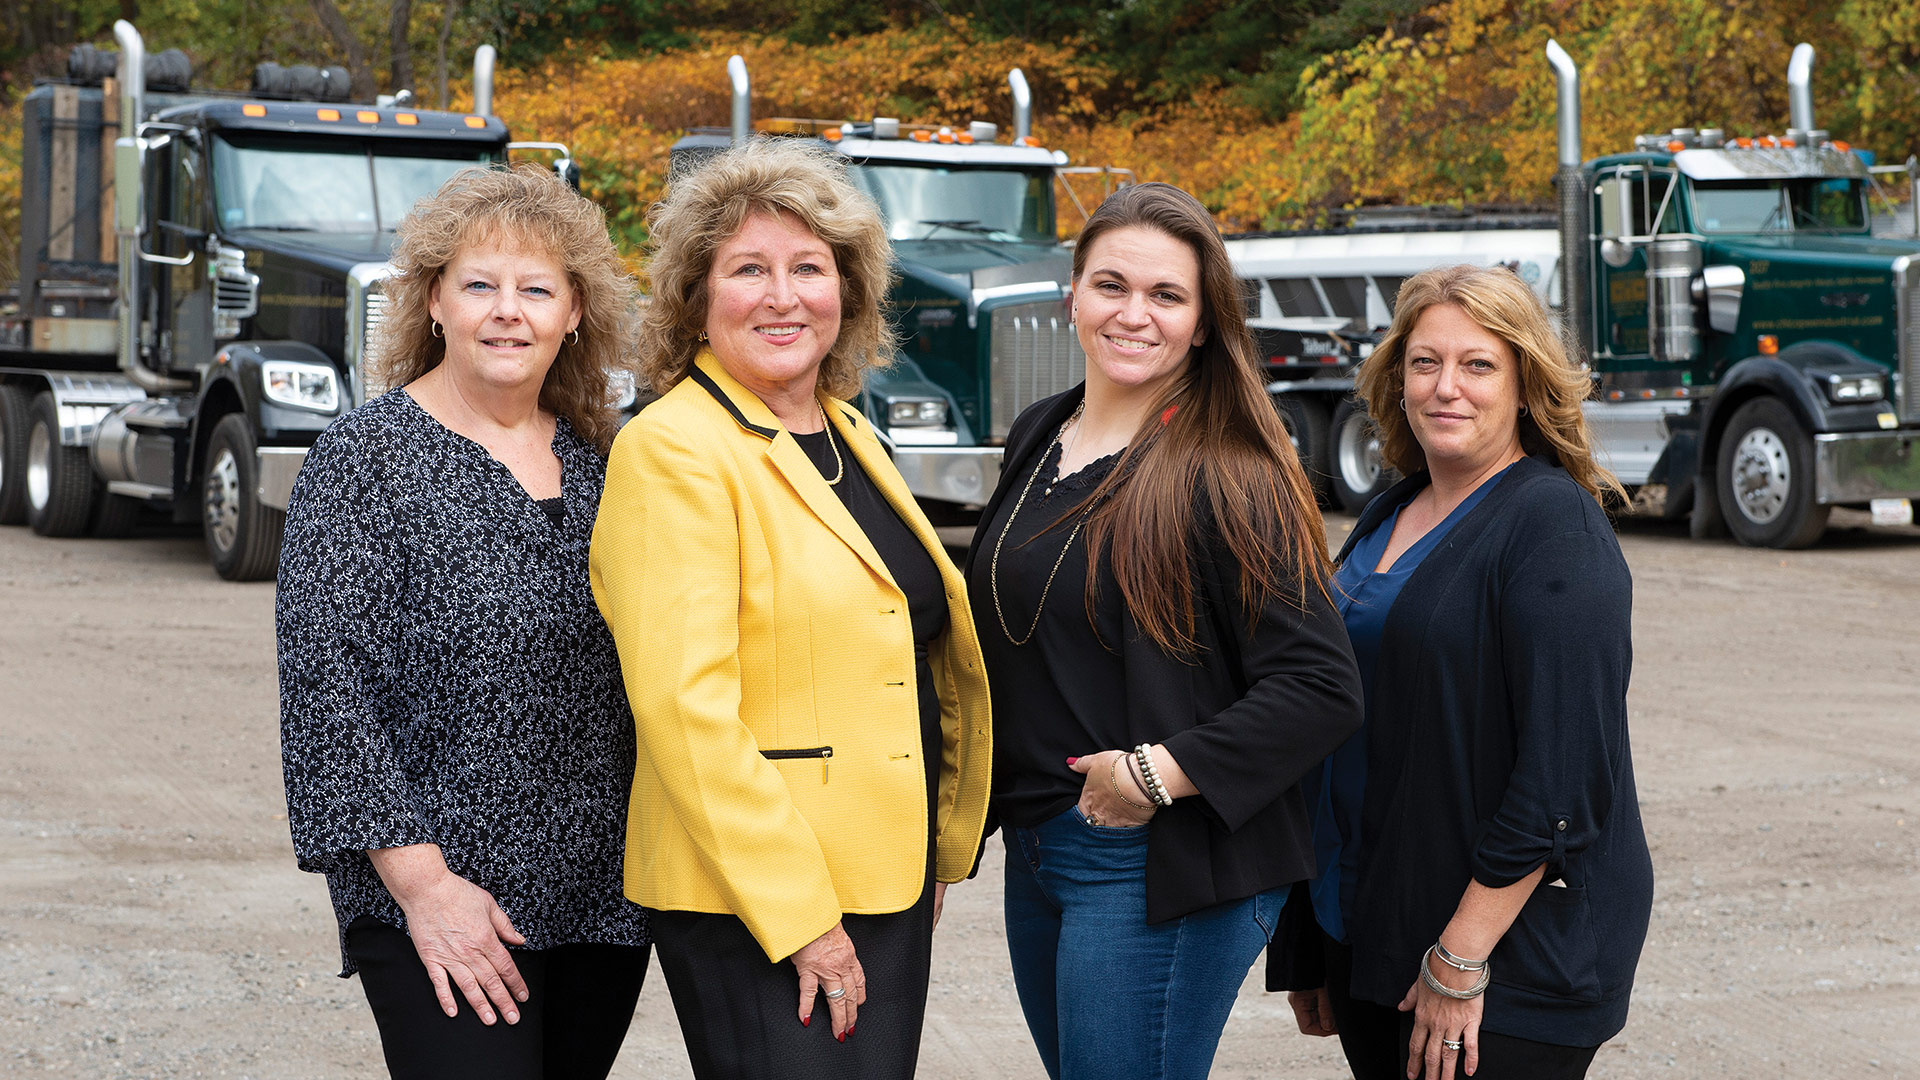 The management team at Chicopee Industrial Contractors is now all women: from left, Anne Golden, director of Finance; Carol Campbell, president and CEO; Liz Sauer, project manager; and Deb Dart, director of Operations.